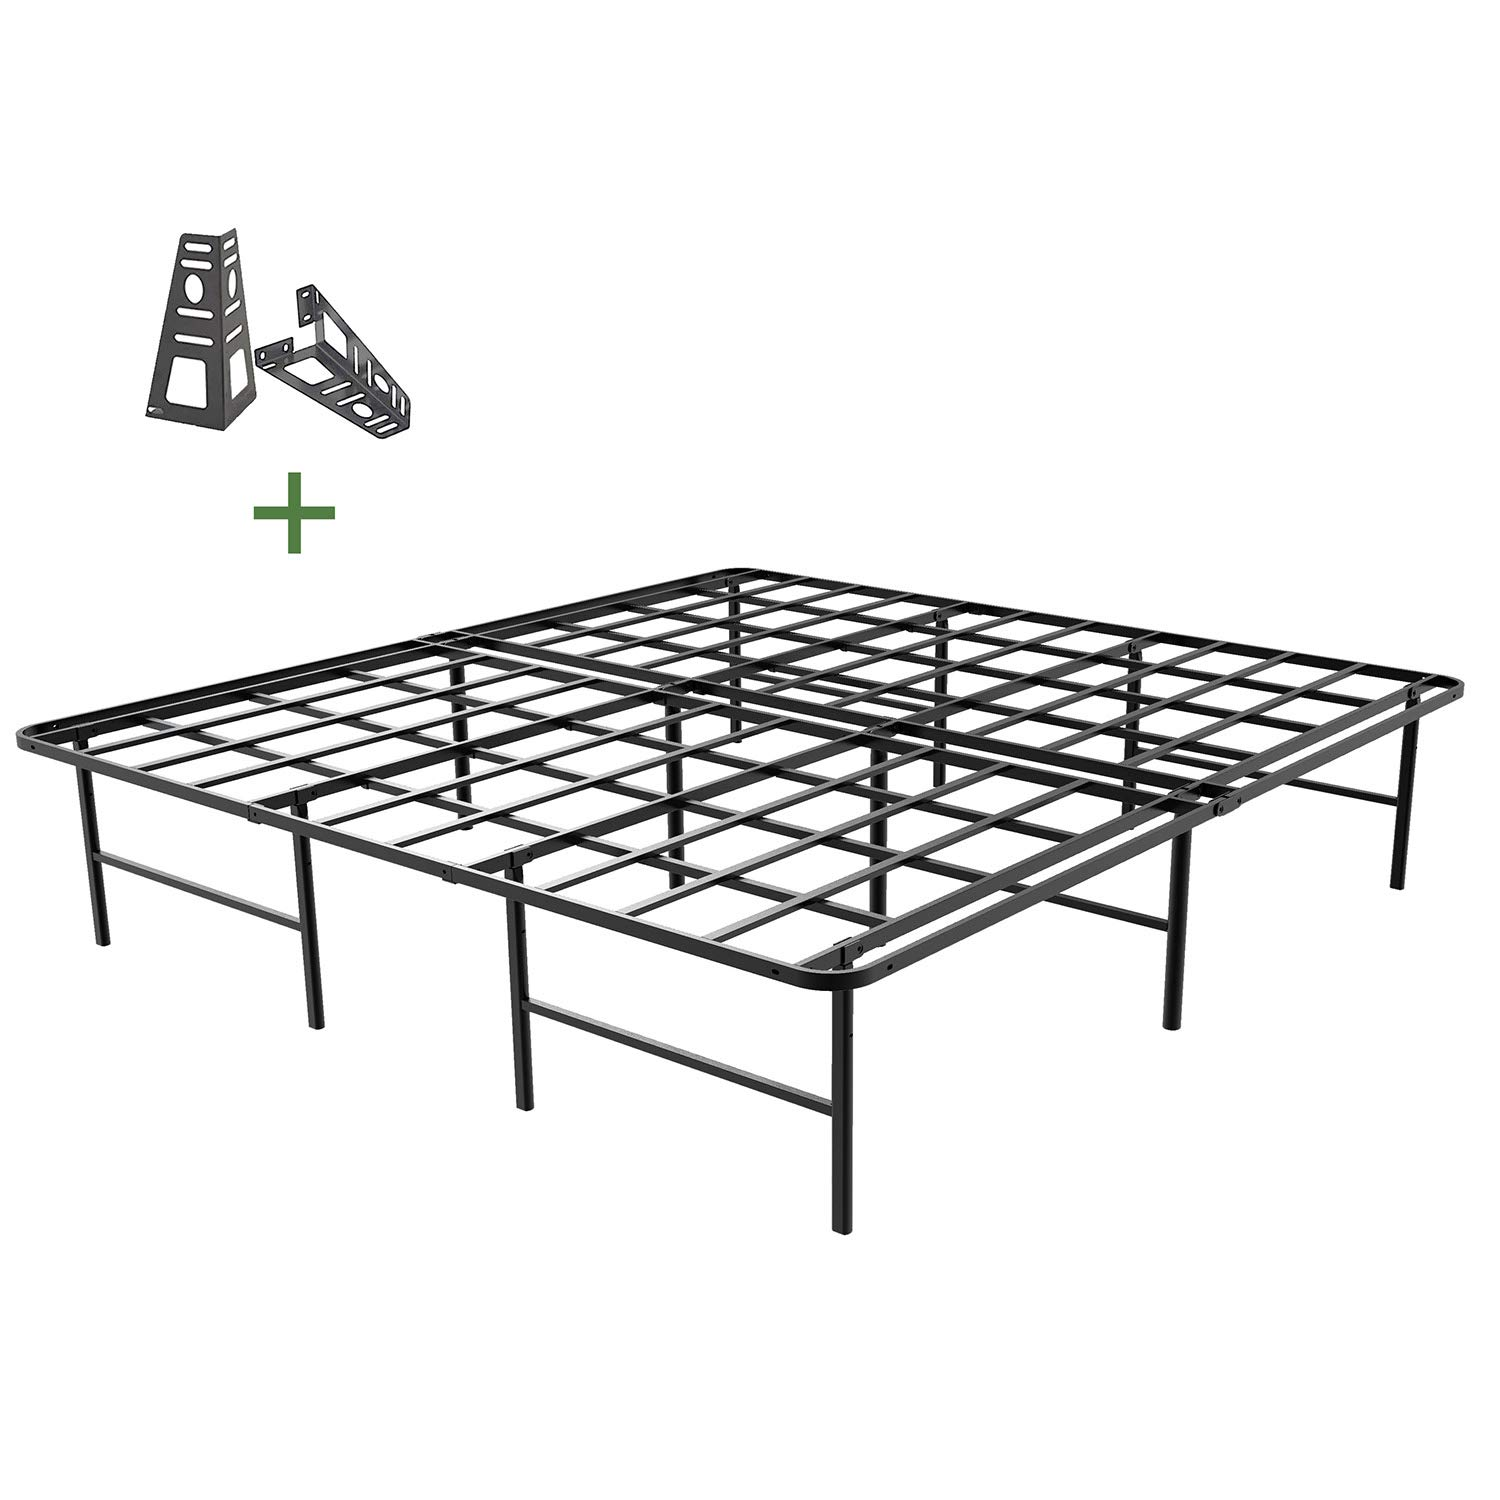 45MinST 16 Inch Tall SmartBase Mattress Foundation/Platform Bed Frame/3000LBS Heavy Duty/Extremely Easy Assembly/Box Spring Replacement/Quiet Noise-Free, Twin XL/Full/Queen/King(King)